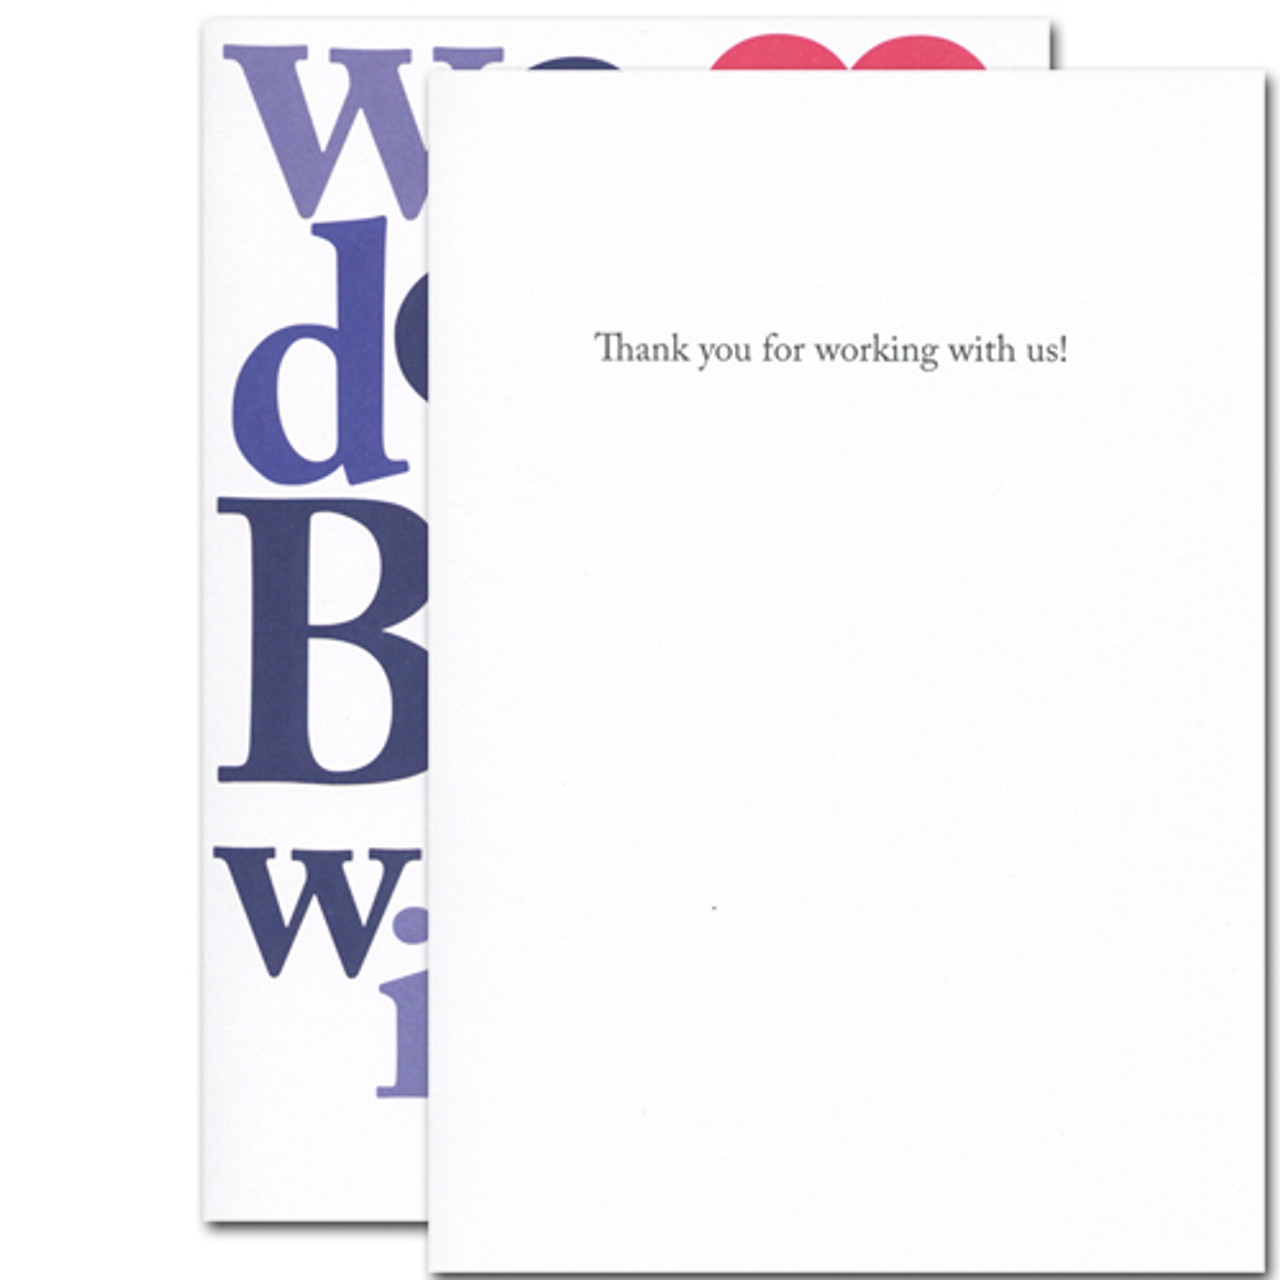 Inside of the Big Appreciation business thank you card  reads, Thank you for working with us.